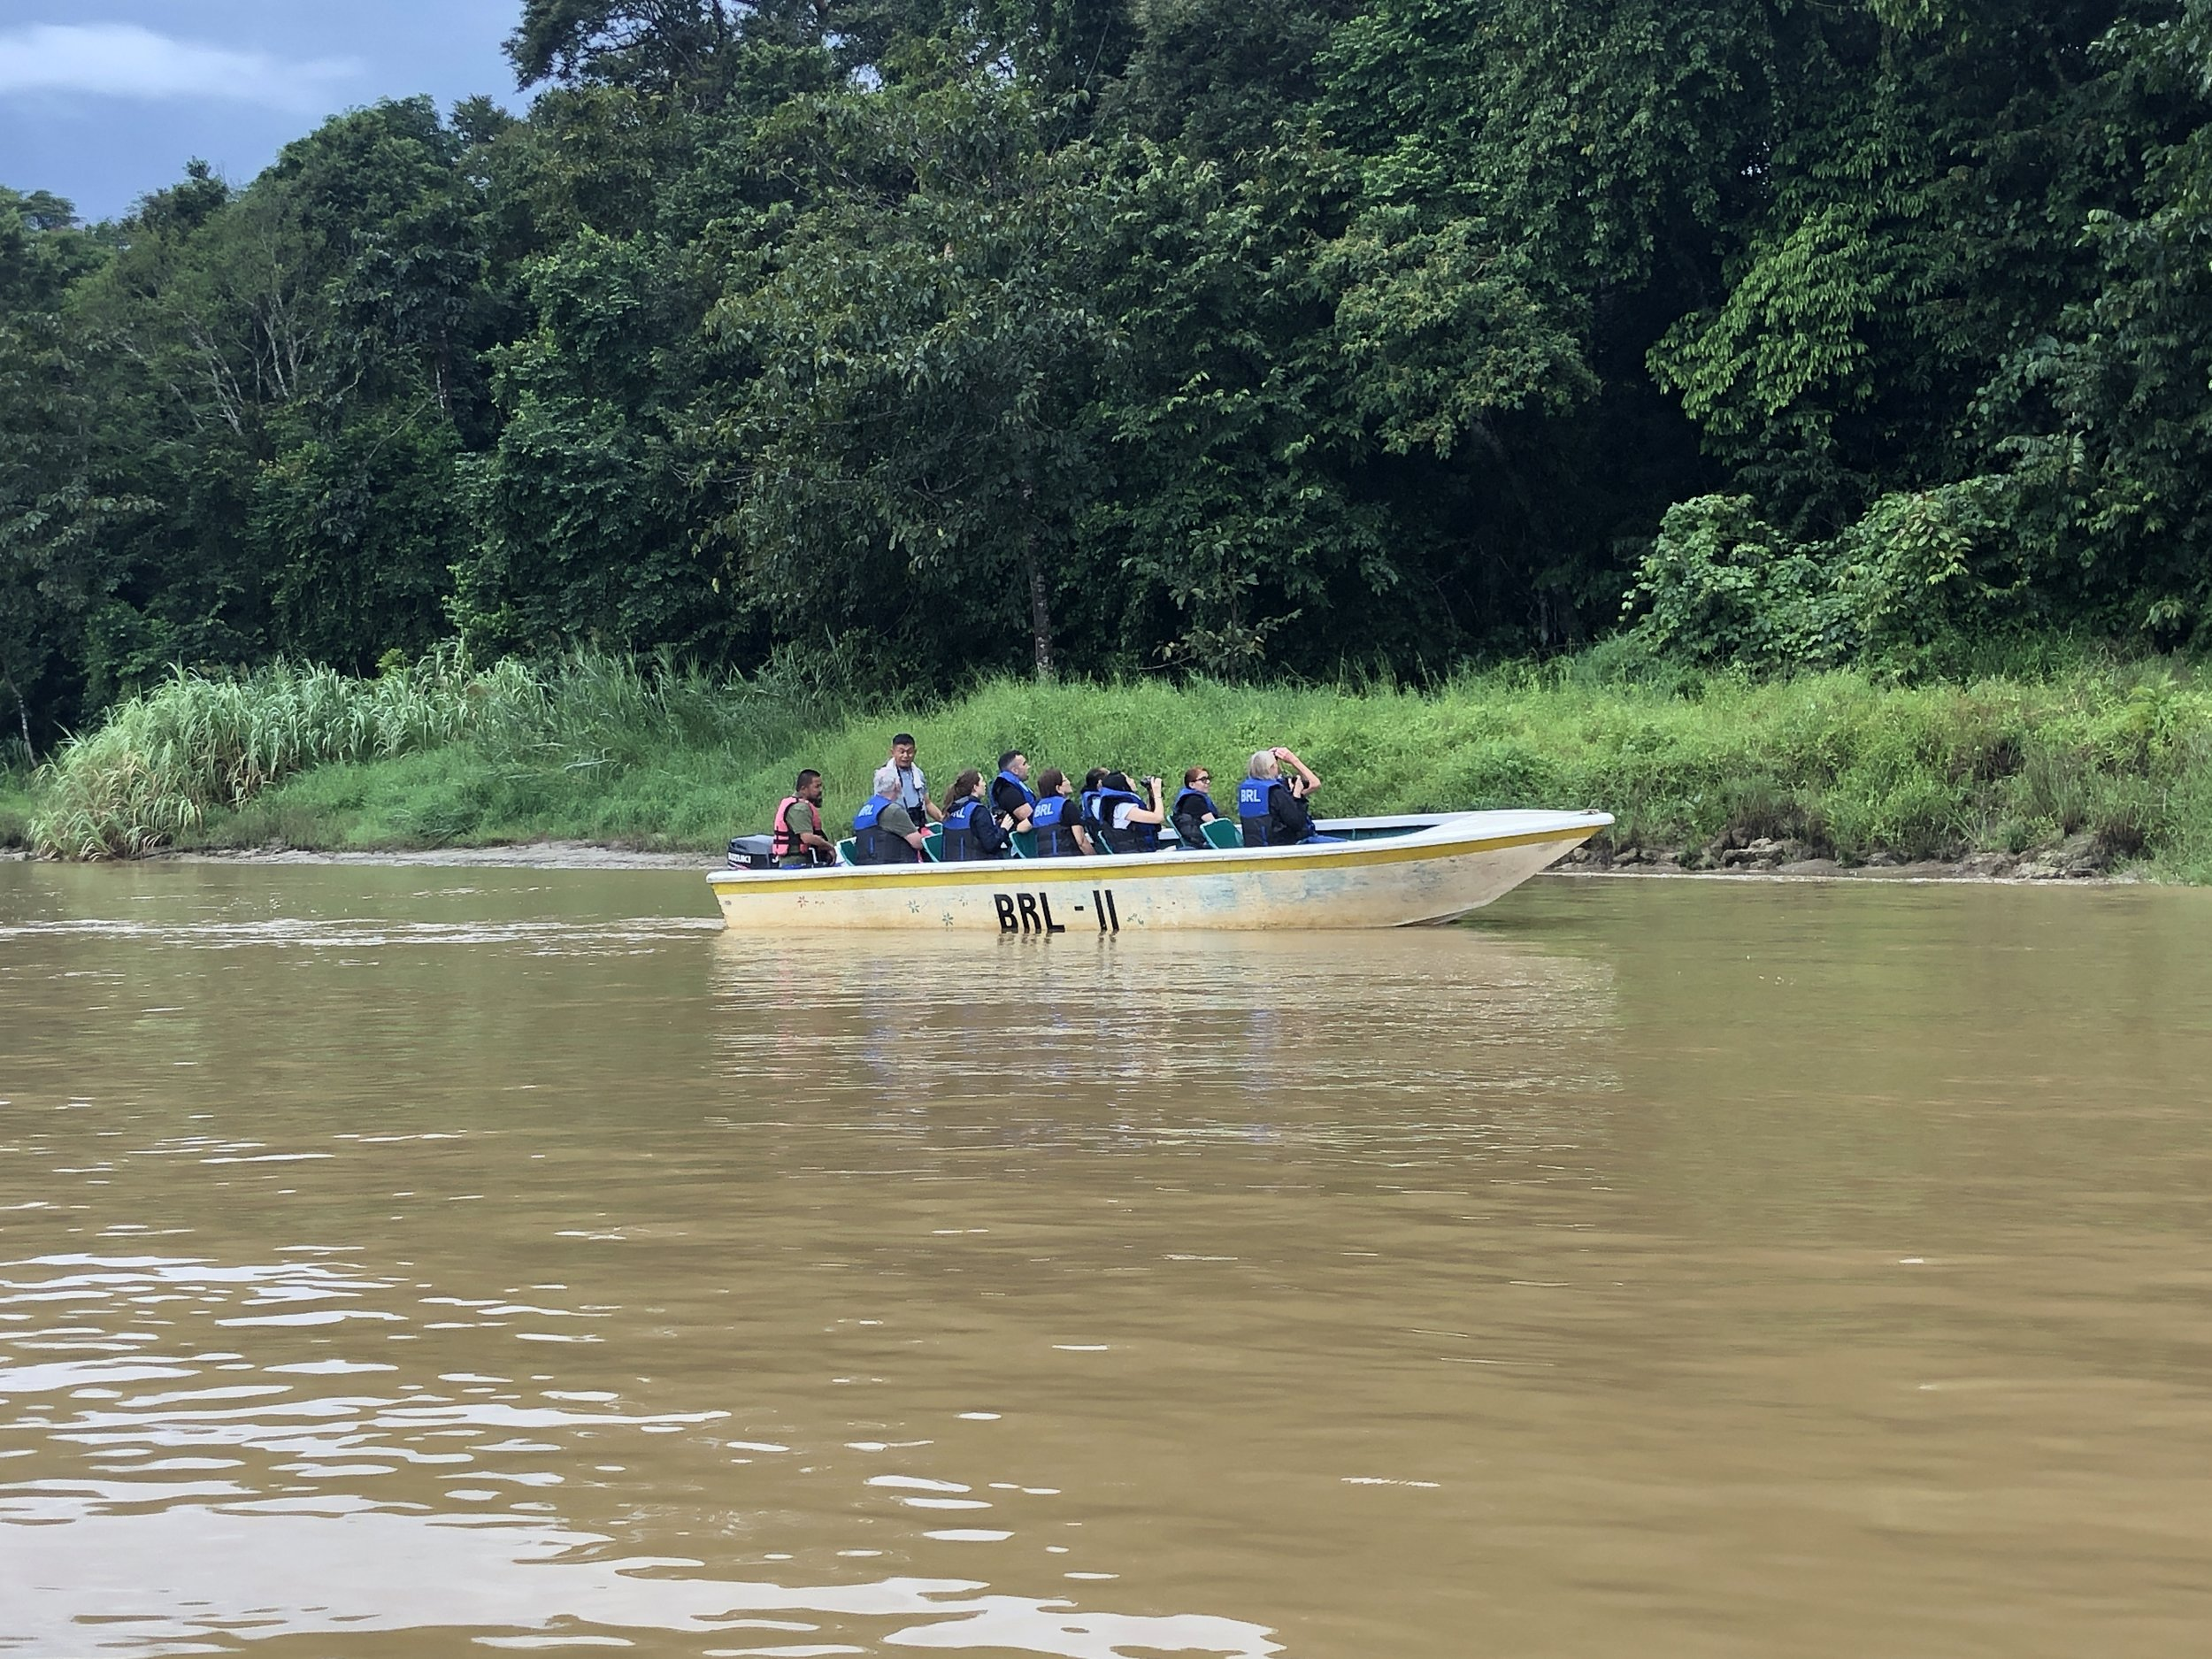 Enjoying searching for wildlife on the River Kinabatangan